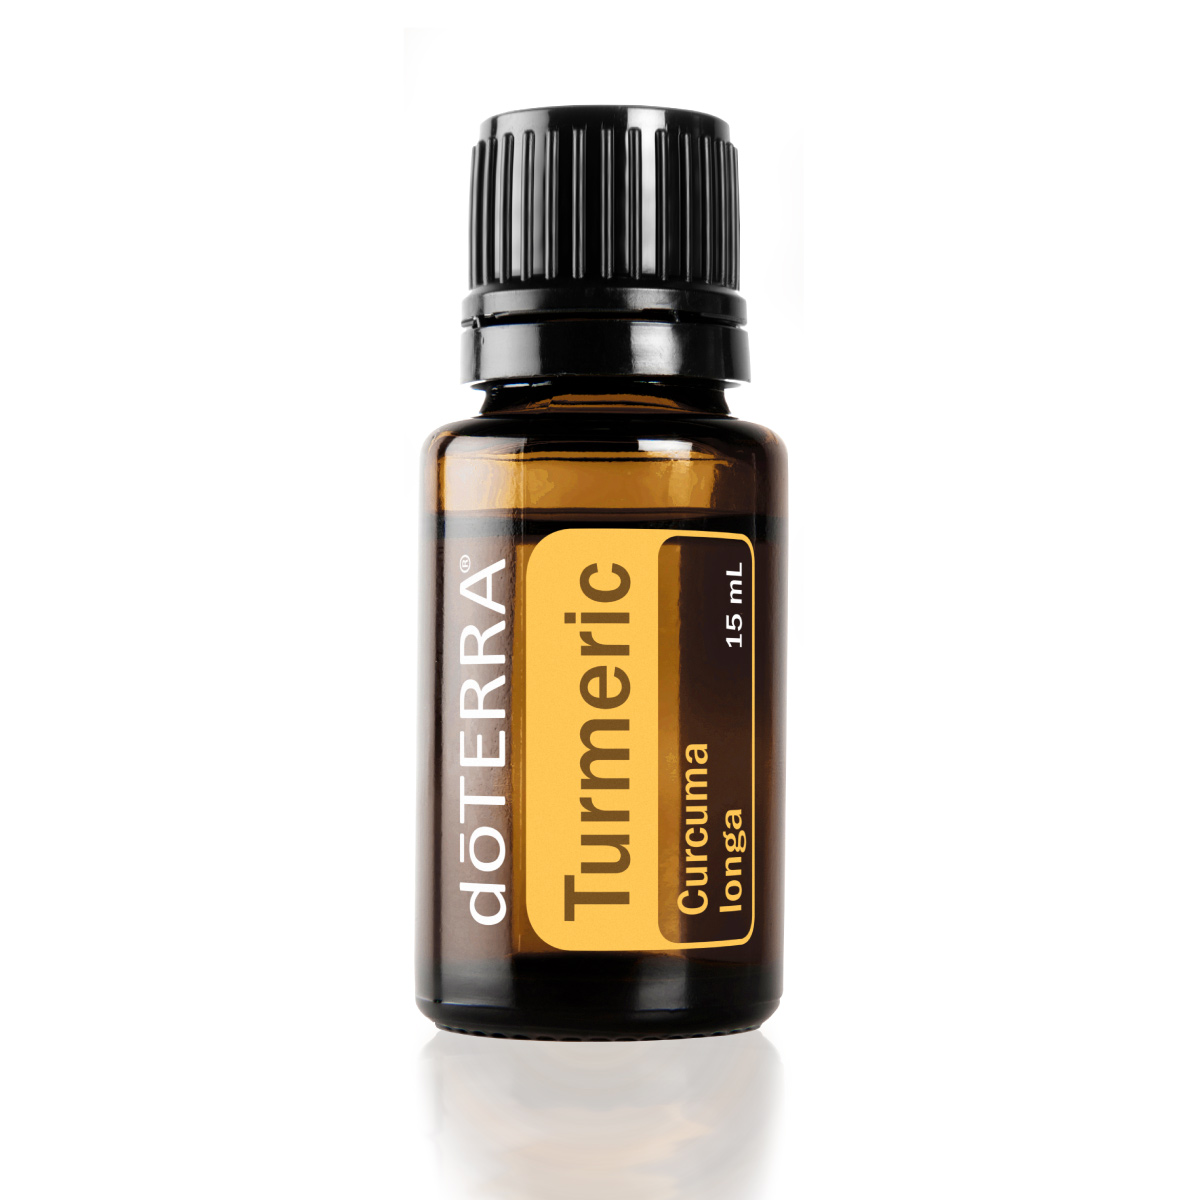 Bottle of doTERRA Turmeric essential oil. How do you use Turmeric oil? Turmeric oil can be used internally to benefit the nervous system and promote a healthy immune response.